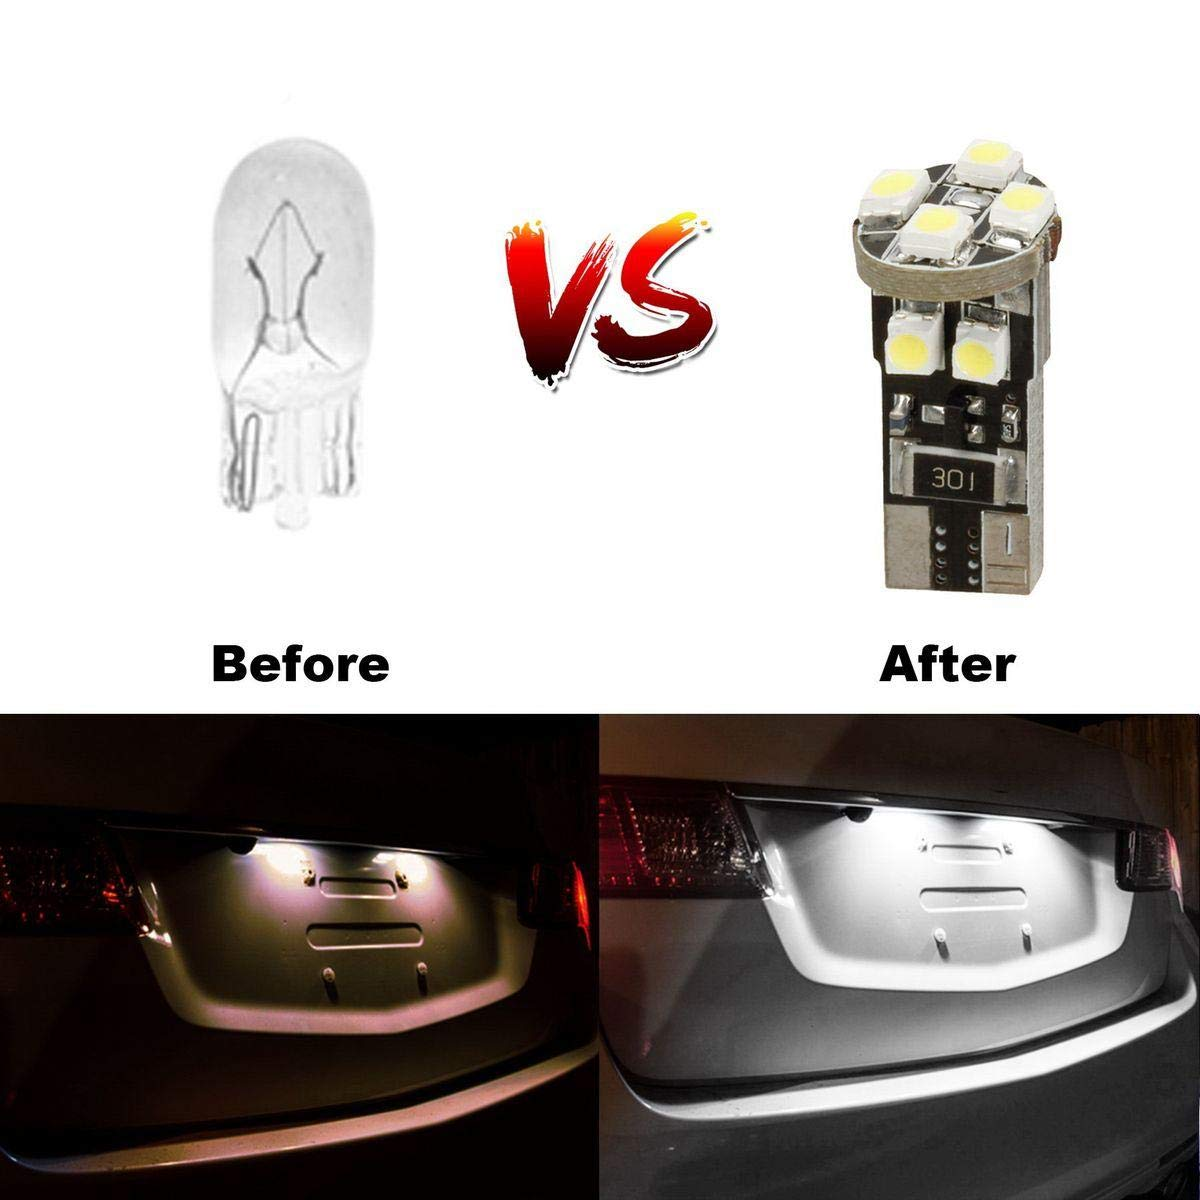 Partsam 2x T10 194 168 W5W LED Backup Reverse Parking Lights Error Free CANBUS Ready Car LED Bulbs 6000K Xenon White Ultra Bright Replacement for Mercedes-Benz Porsche Volkswagen